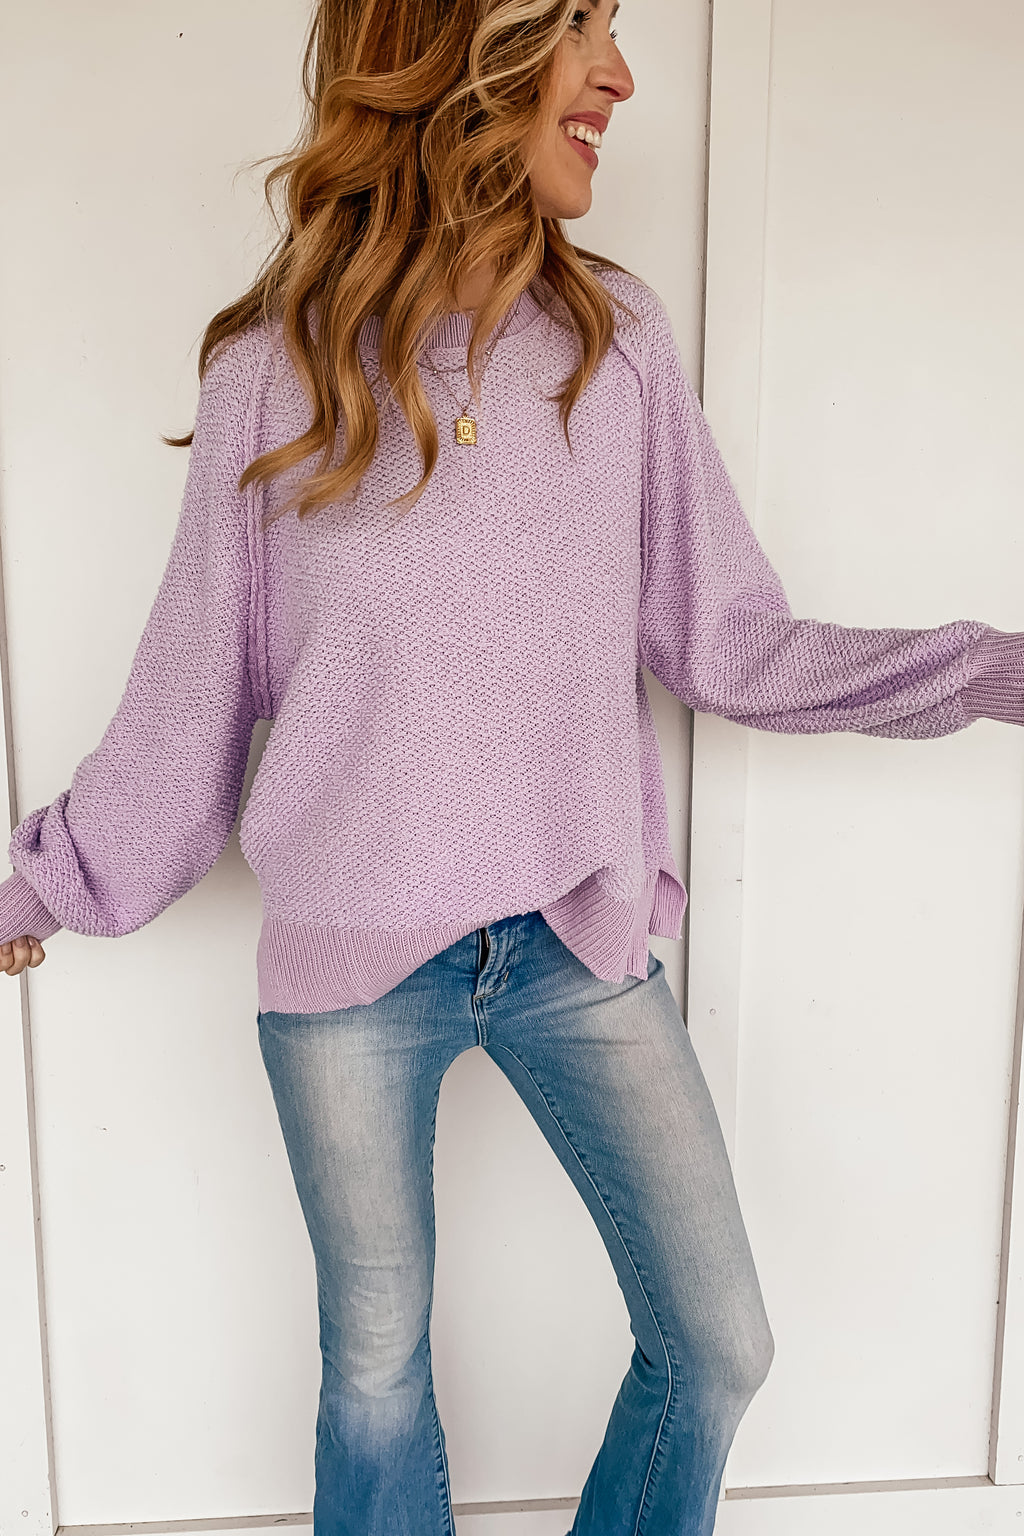 Stephanie Textured Sweater in Lavender